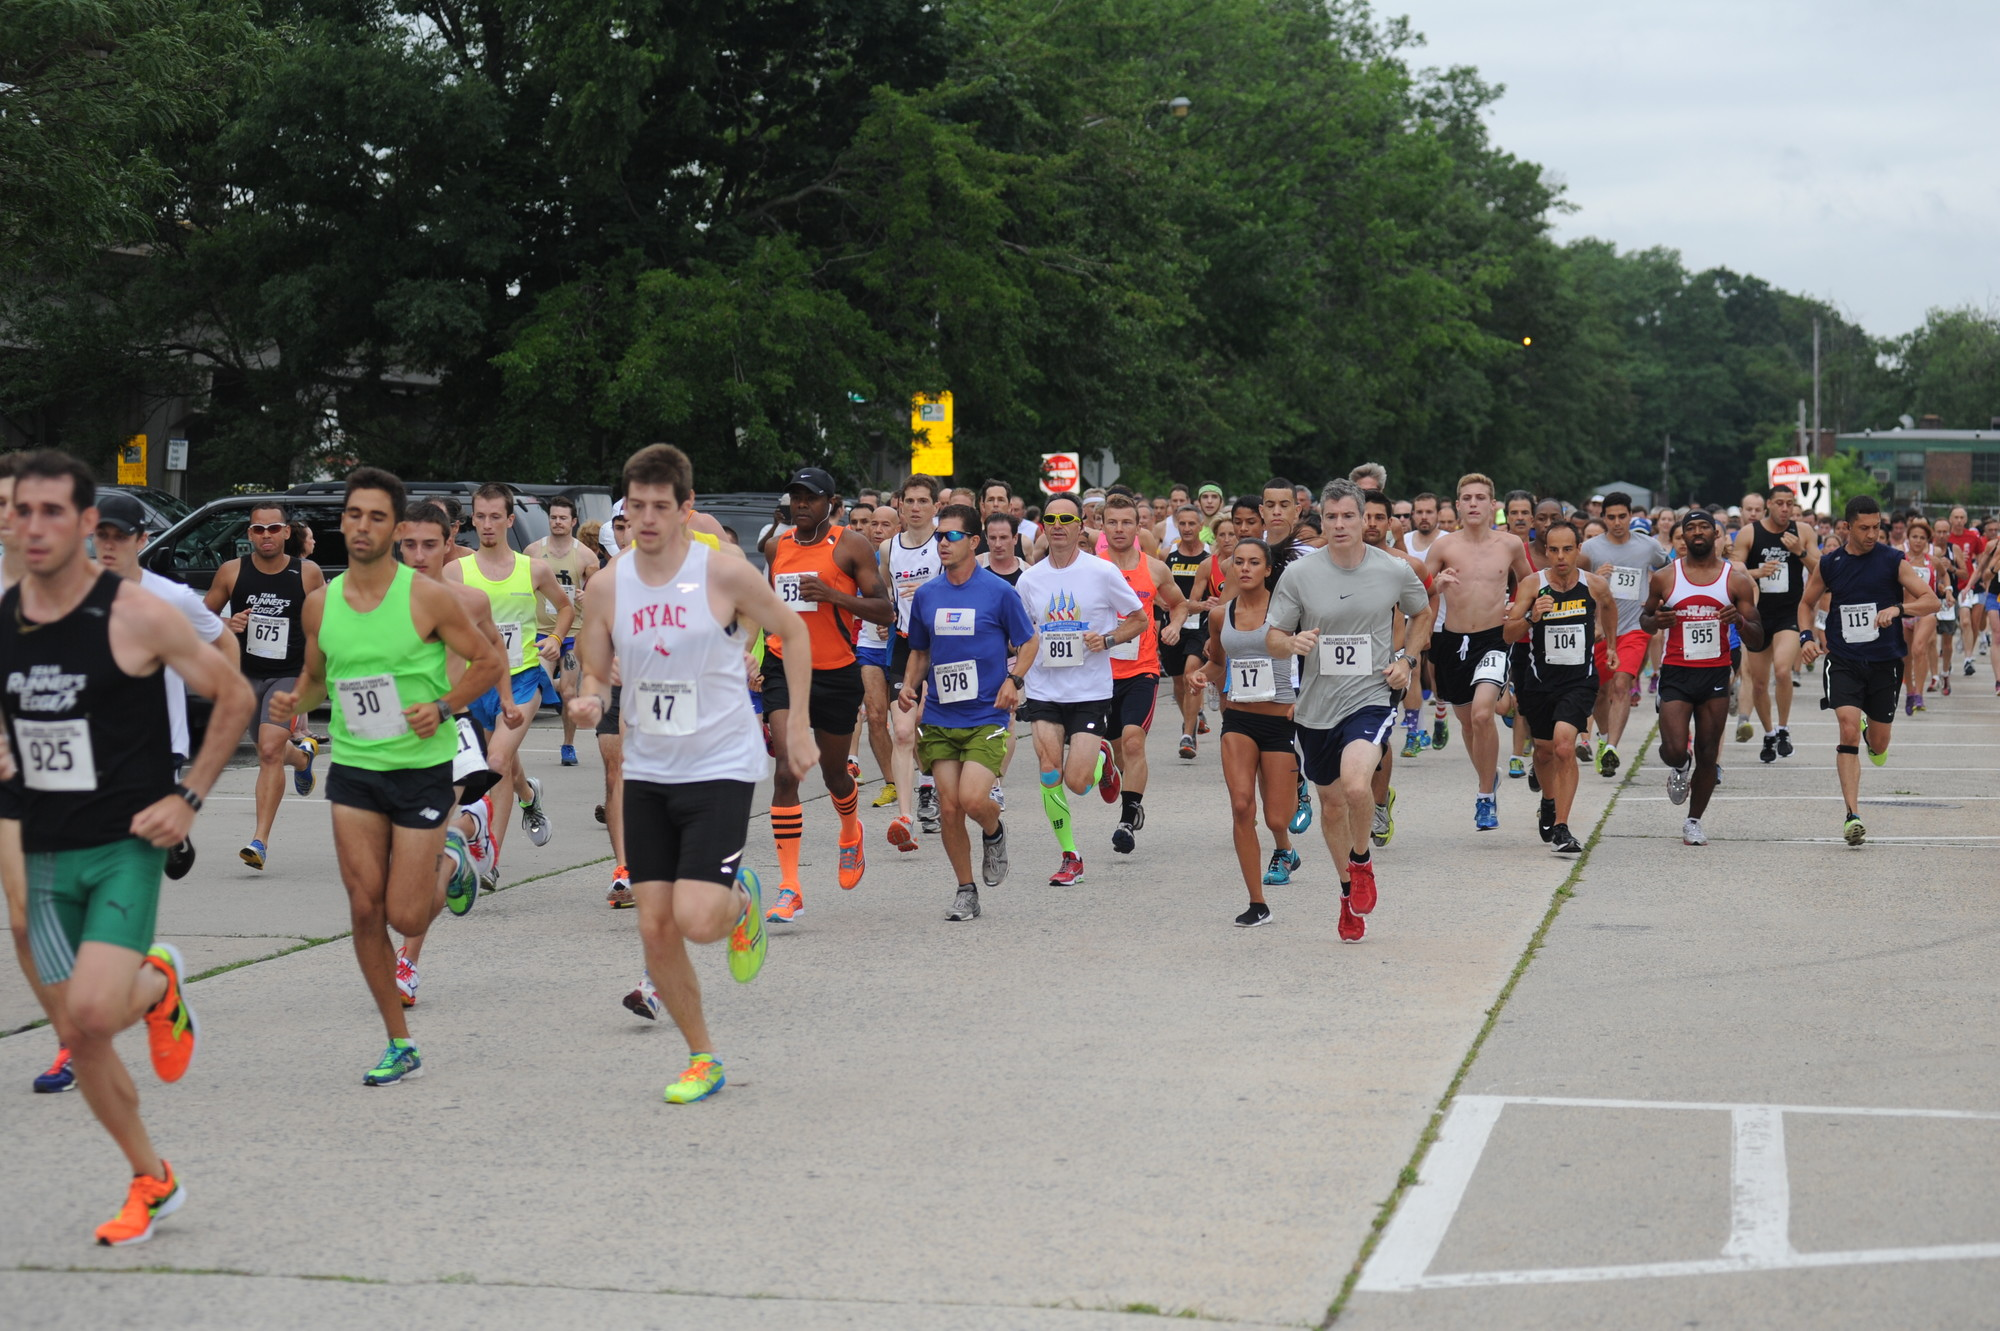 More than 500 runners took part in the 32nd annual Independence Day Run, hosted the Bellmore Striders running club.